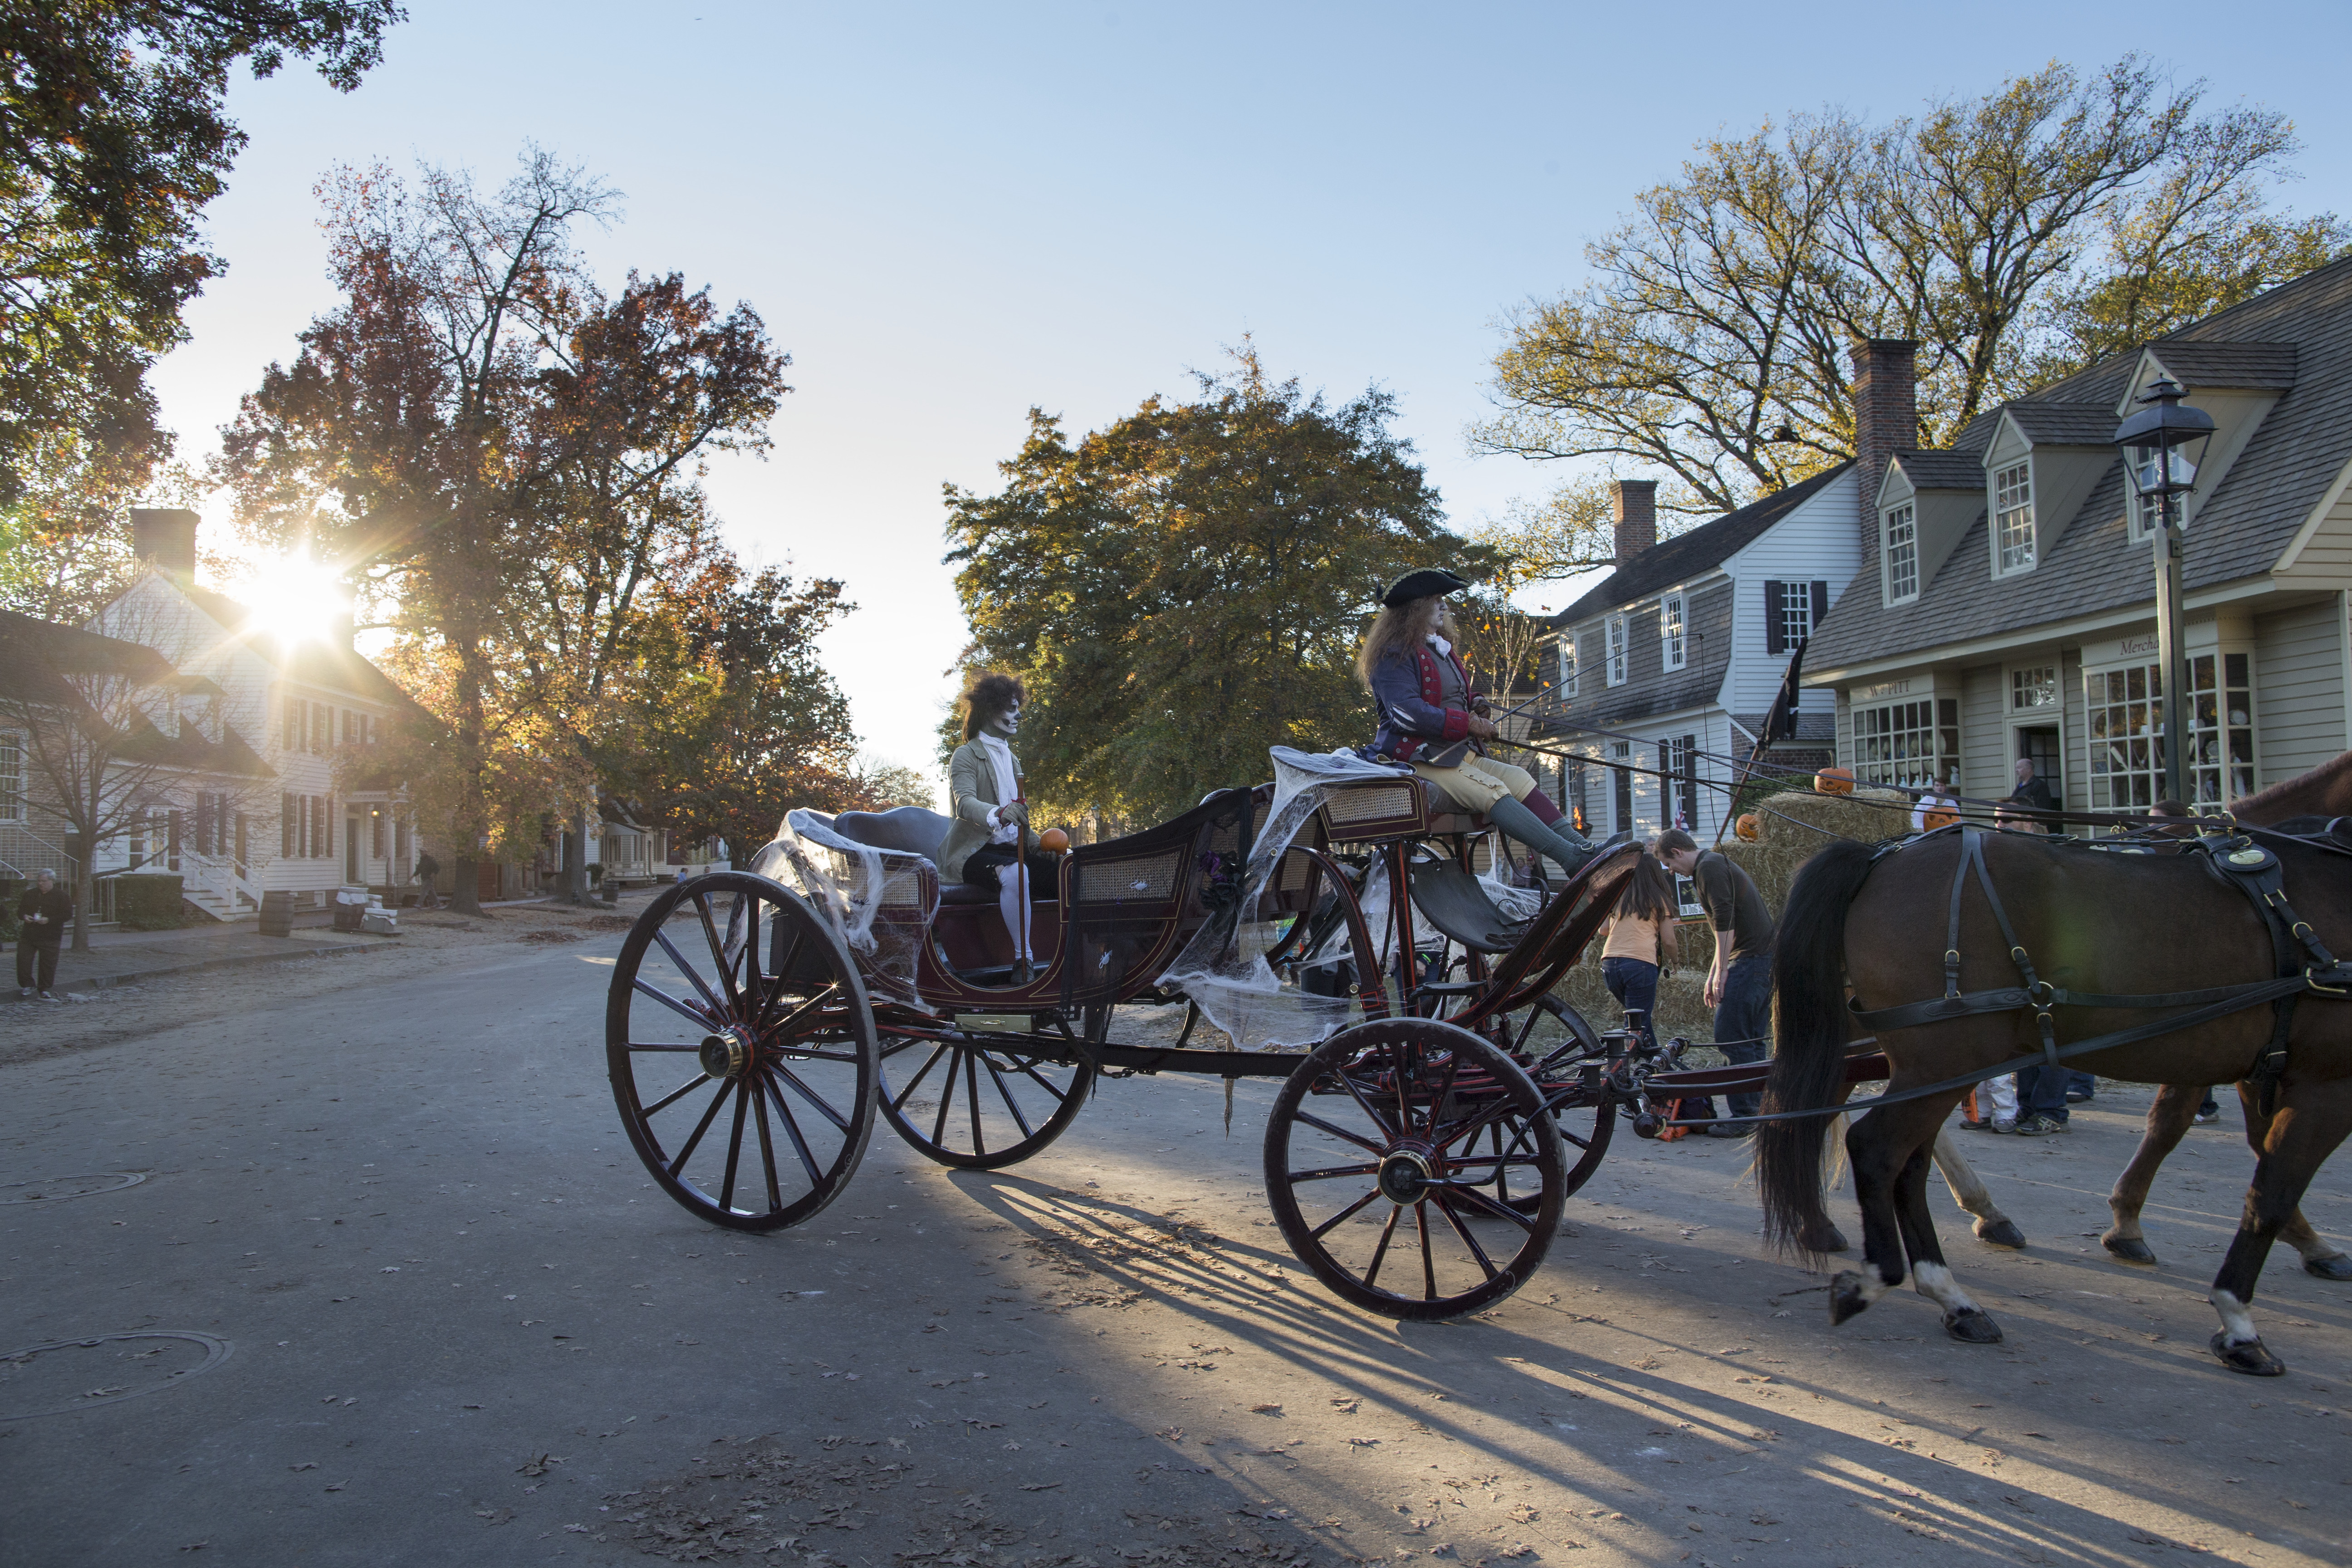 Spooky carriage ride in Colonial Williamsburg